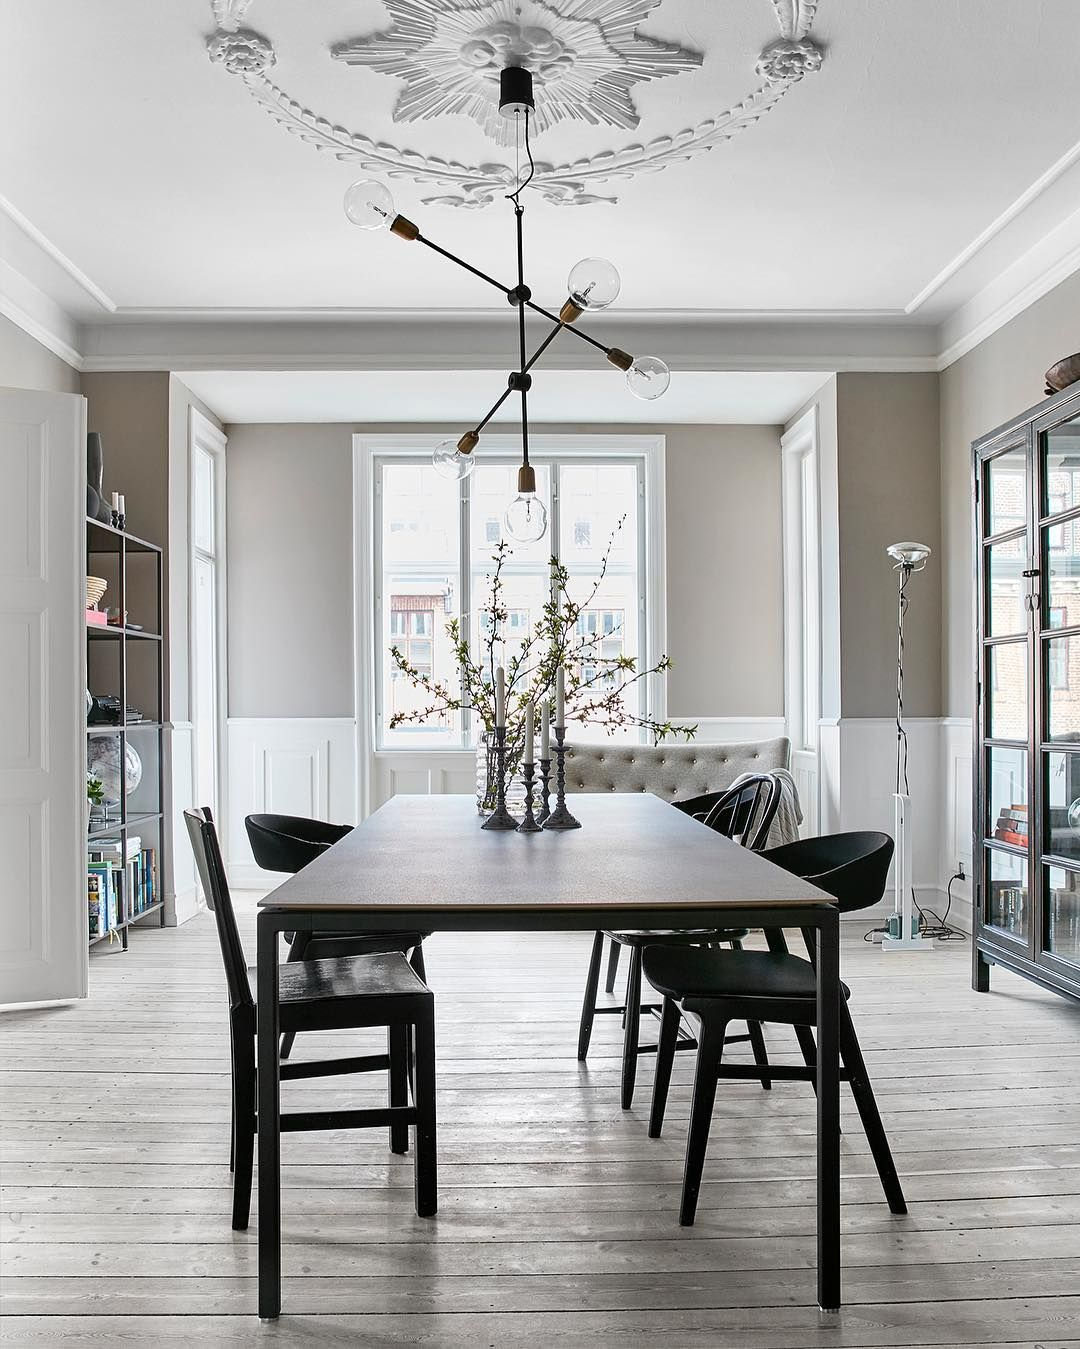 Pinsabon Home On  Mix & Chic Home   Pinterest  Room Captivating Dining Room Cupboard Decorating Design